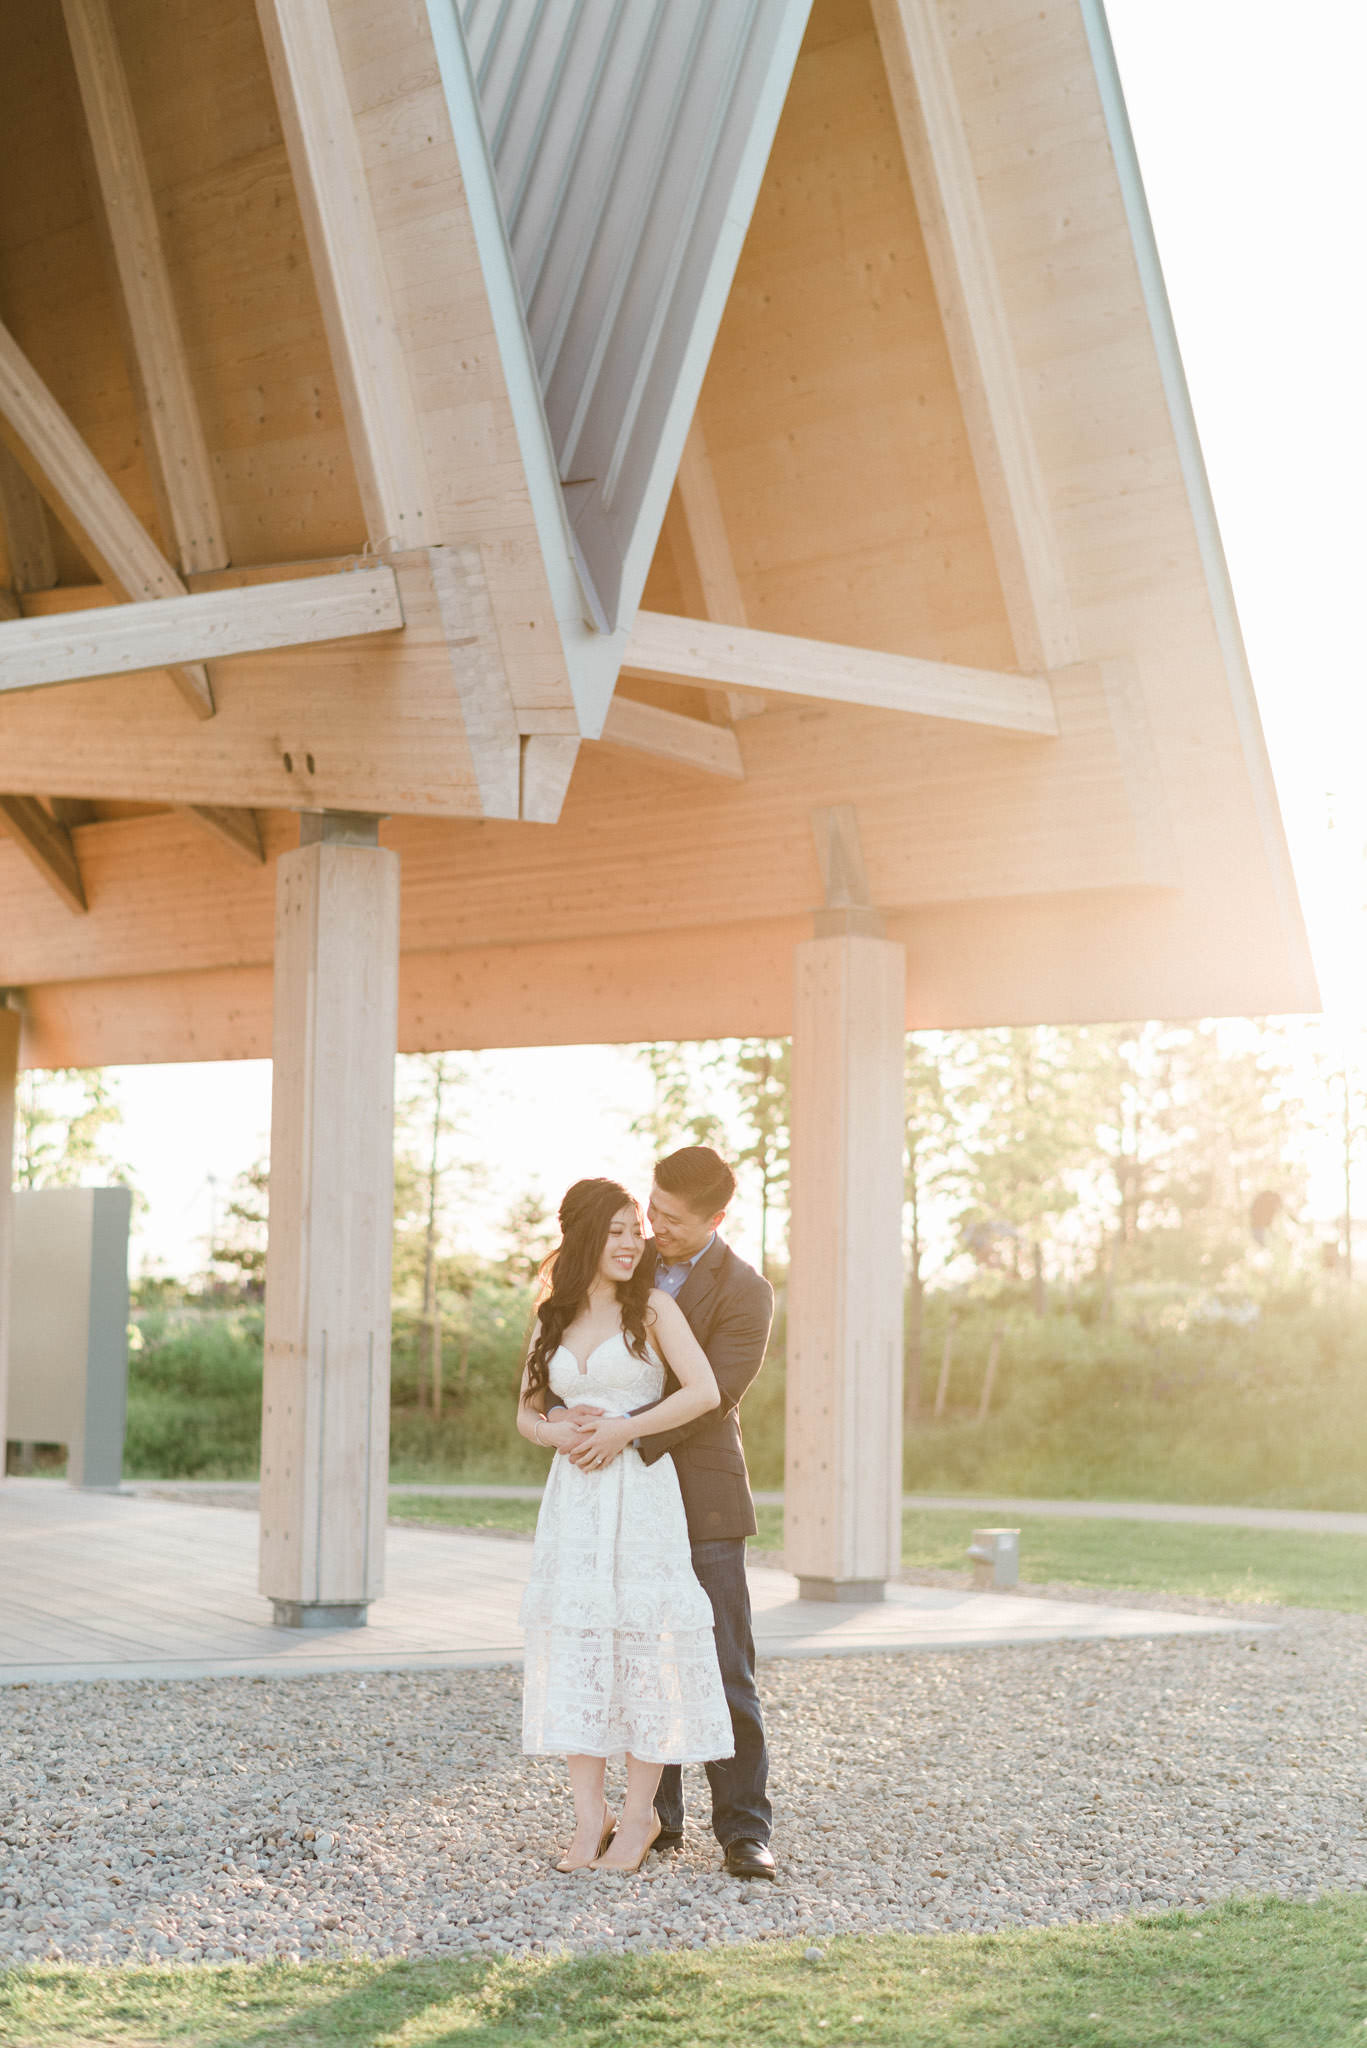 Epic engagement of a couple shot under the pavilion at Trillium Park during sunset